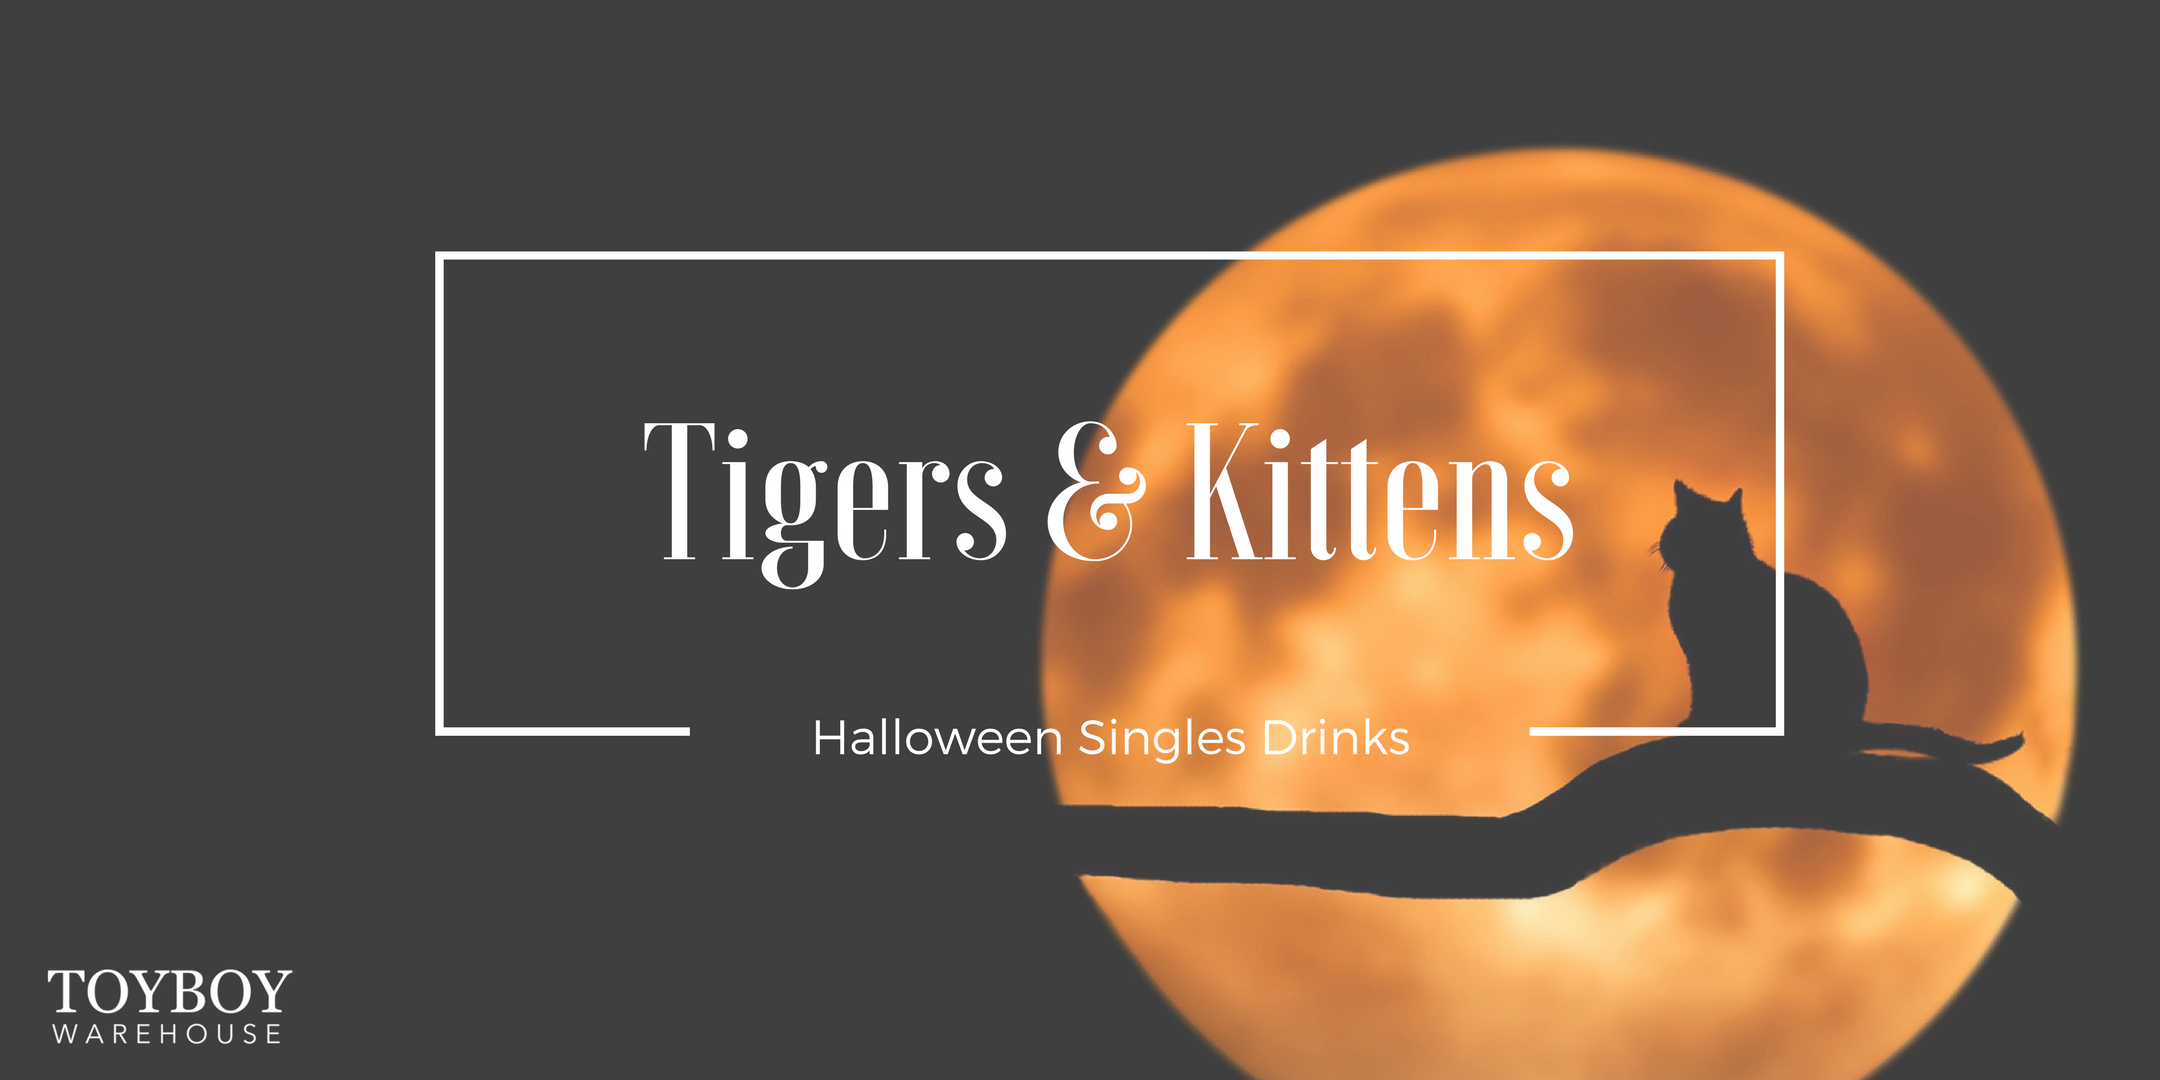 Tigers and Kittens Halloween Singles Drinks